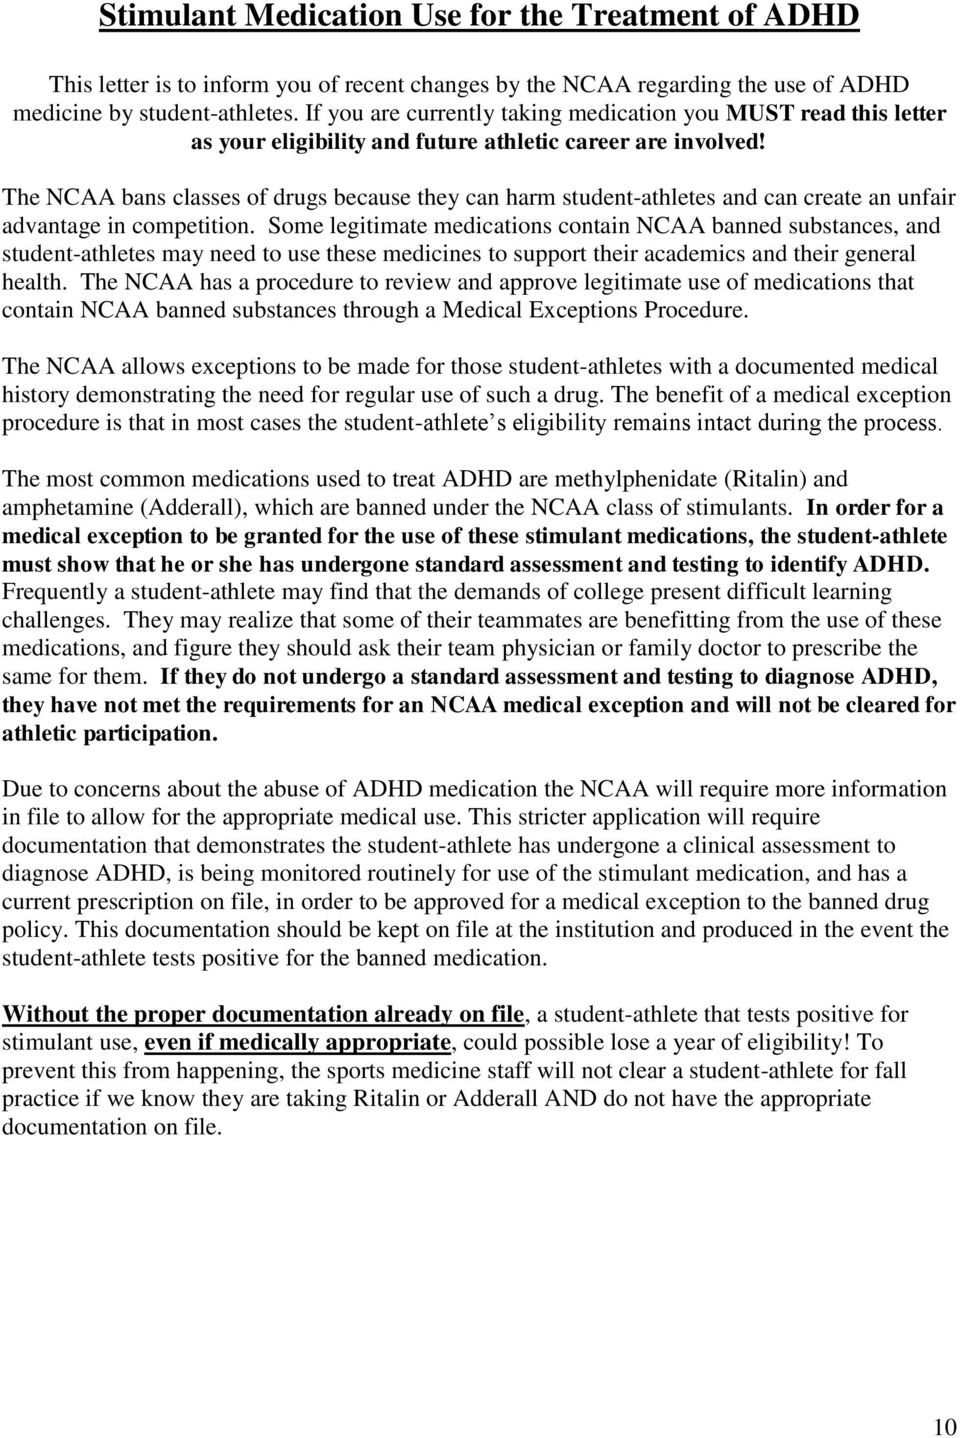 The NCAA bans classes of drugs because they can harm student-athletes and can create an unfair advantage in competition.